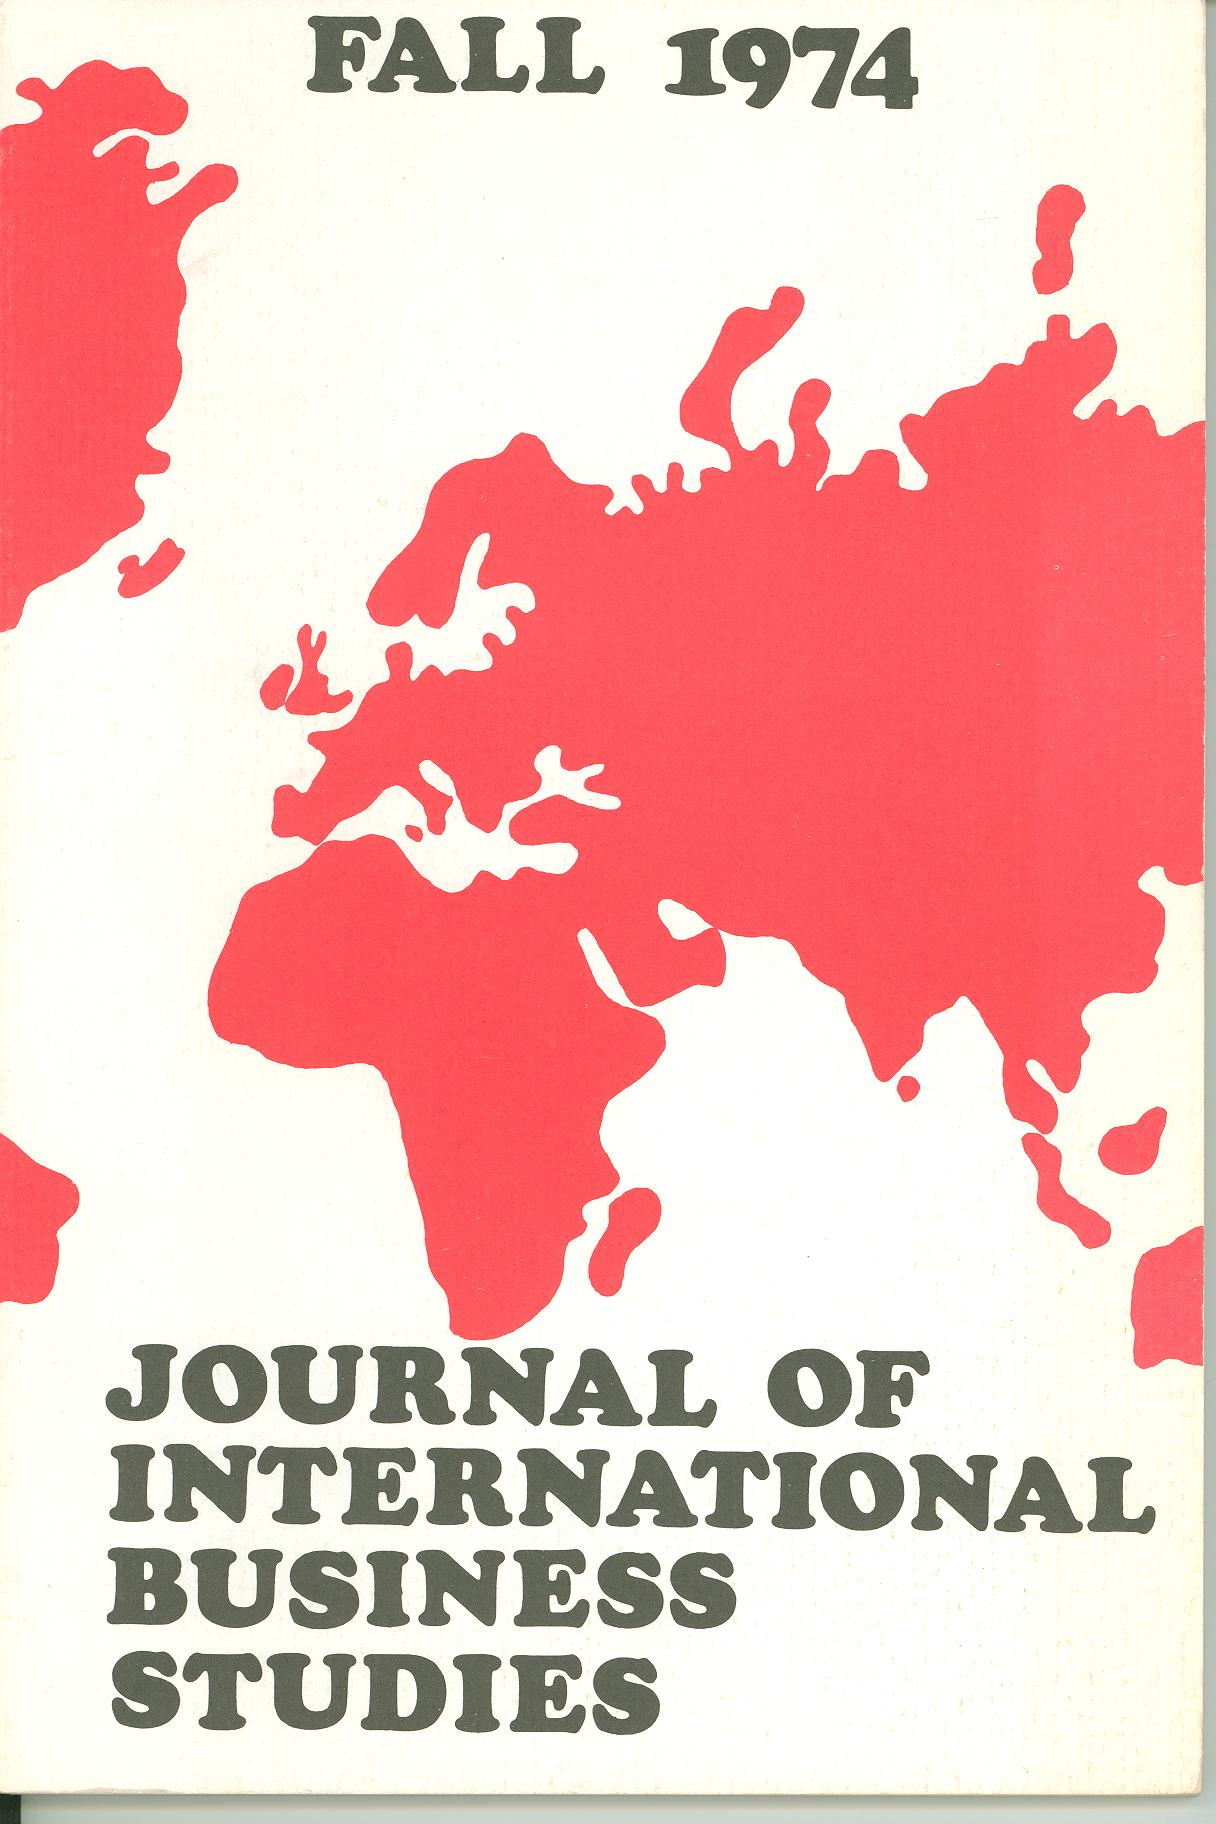 Cover design from a 1974 issue of JIBS